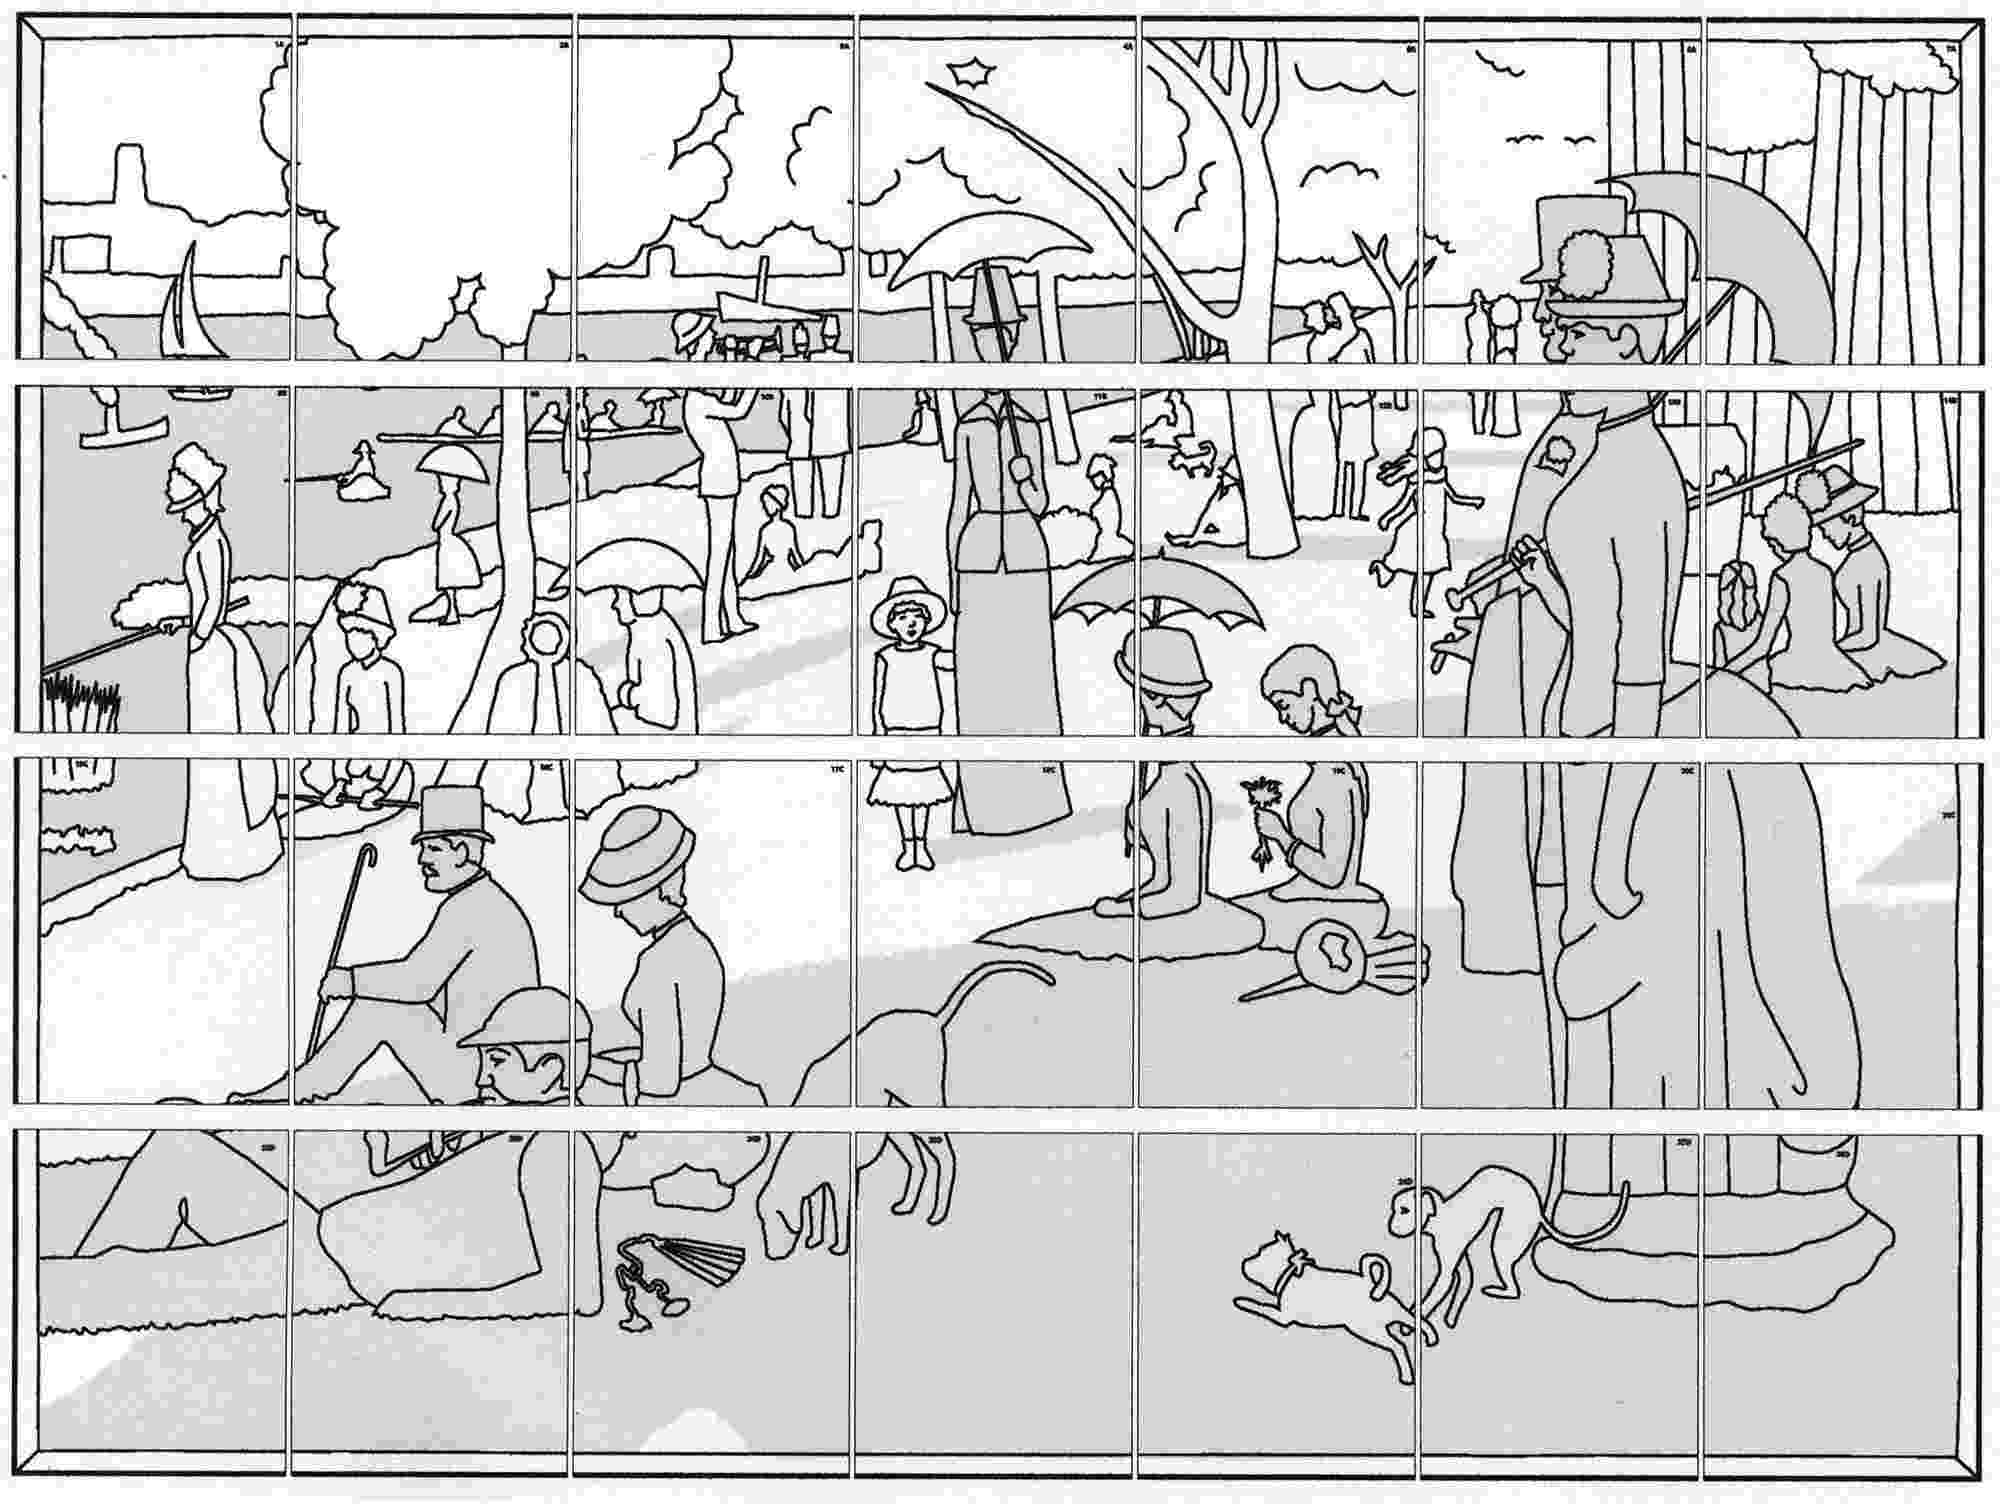 george seurat coloring pages post impressionism 19t century georges seurat a sunday seurat coloring pages george